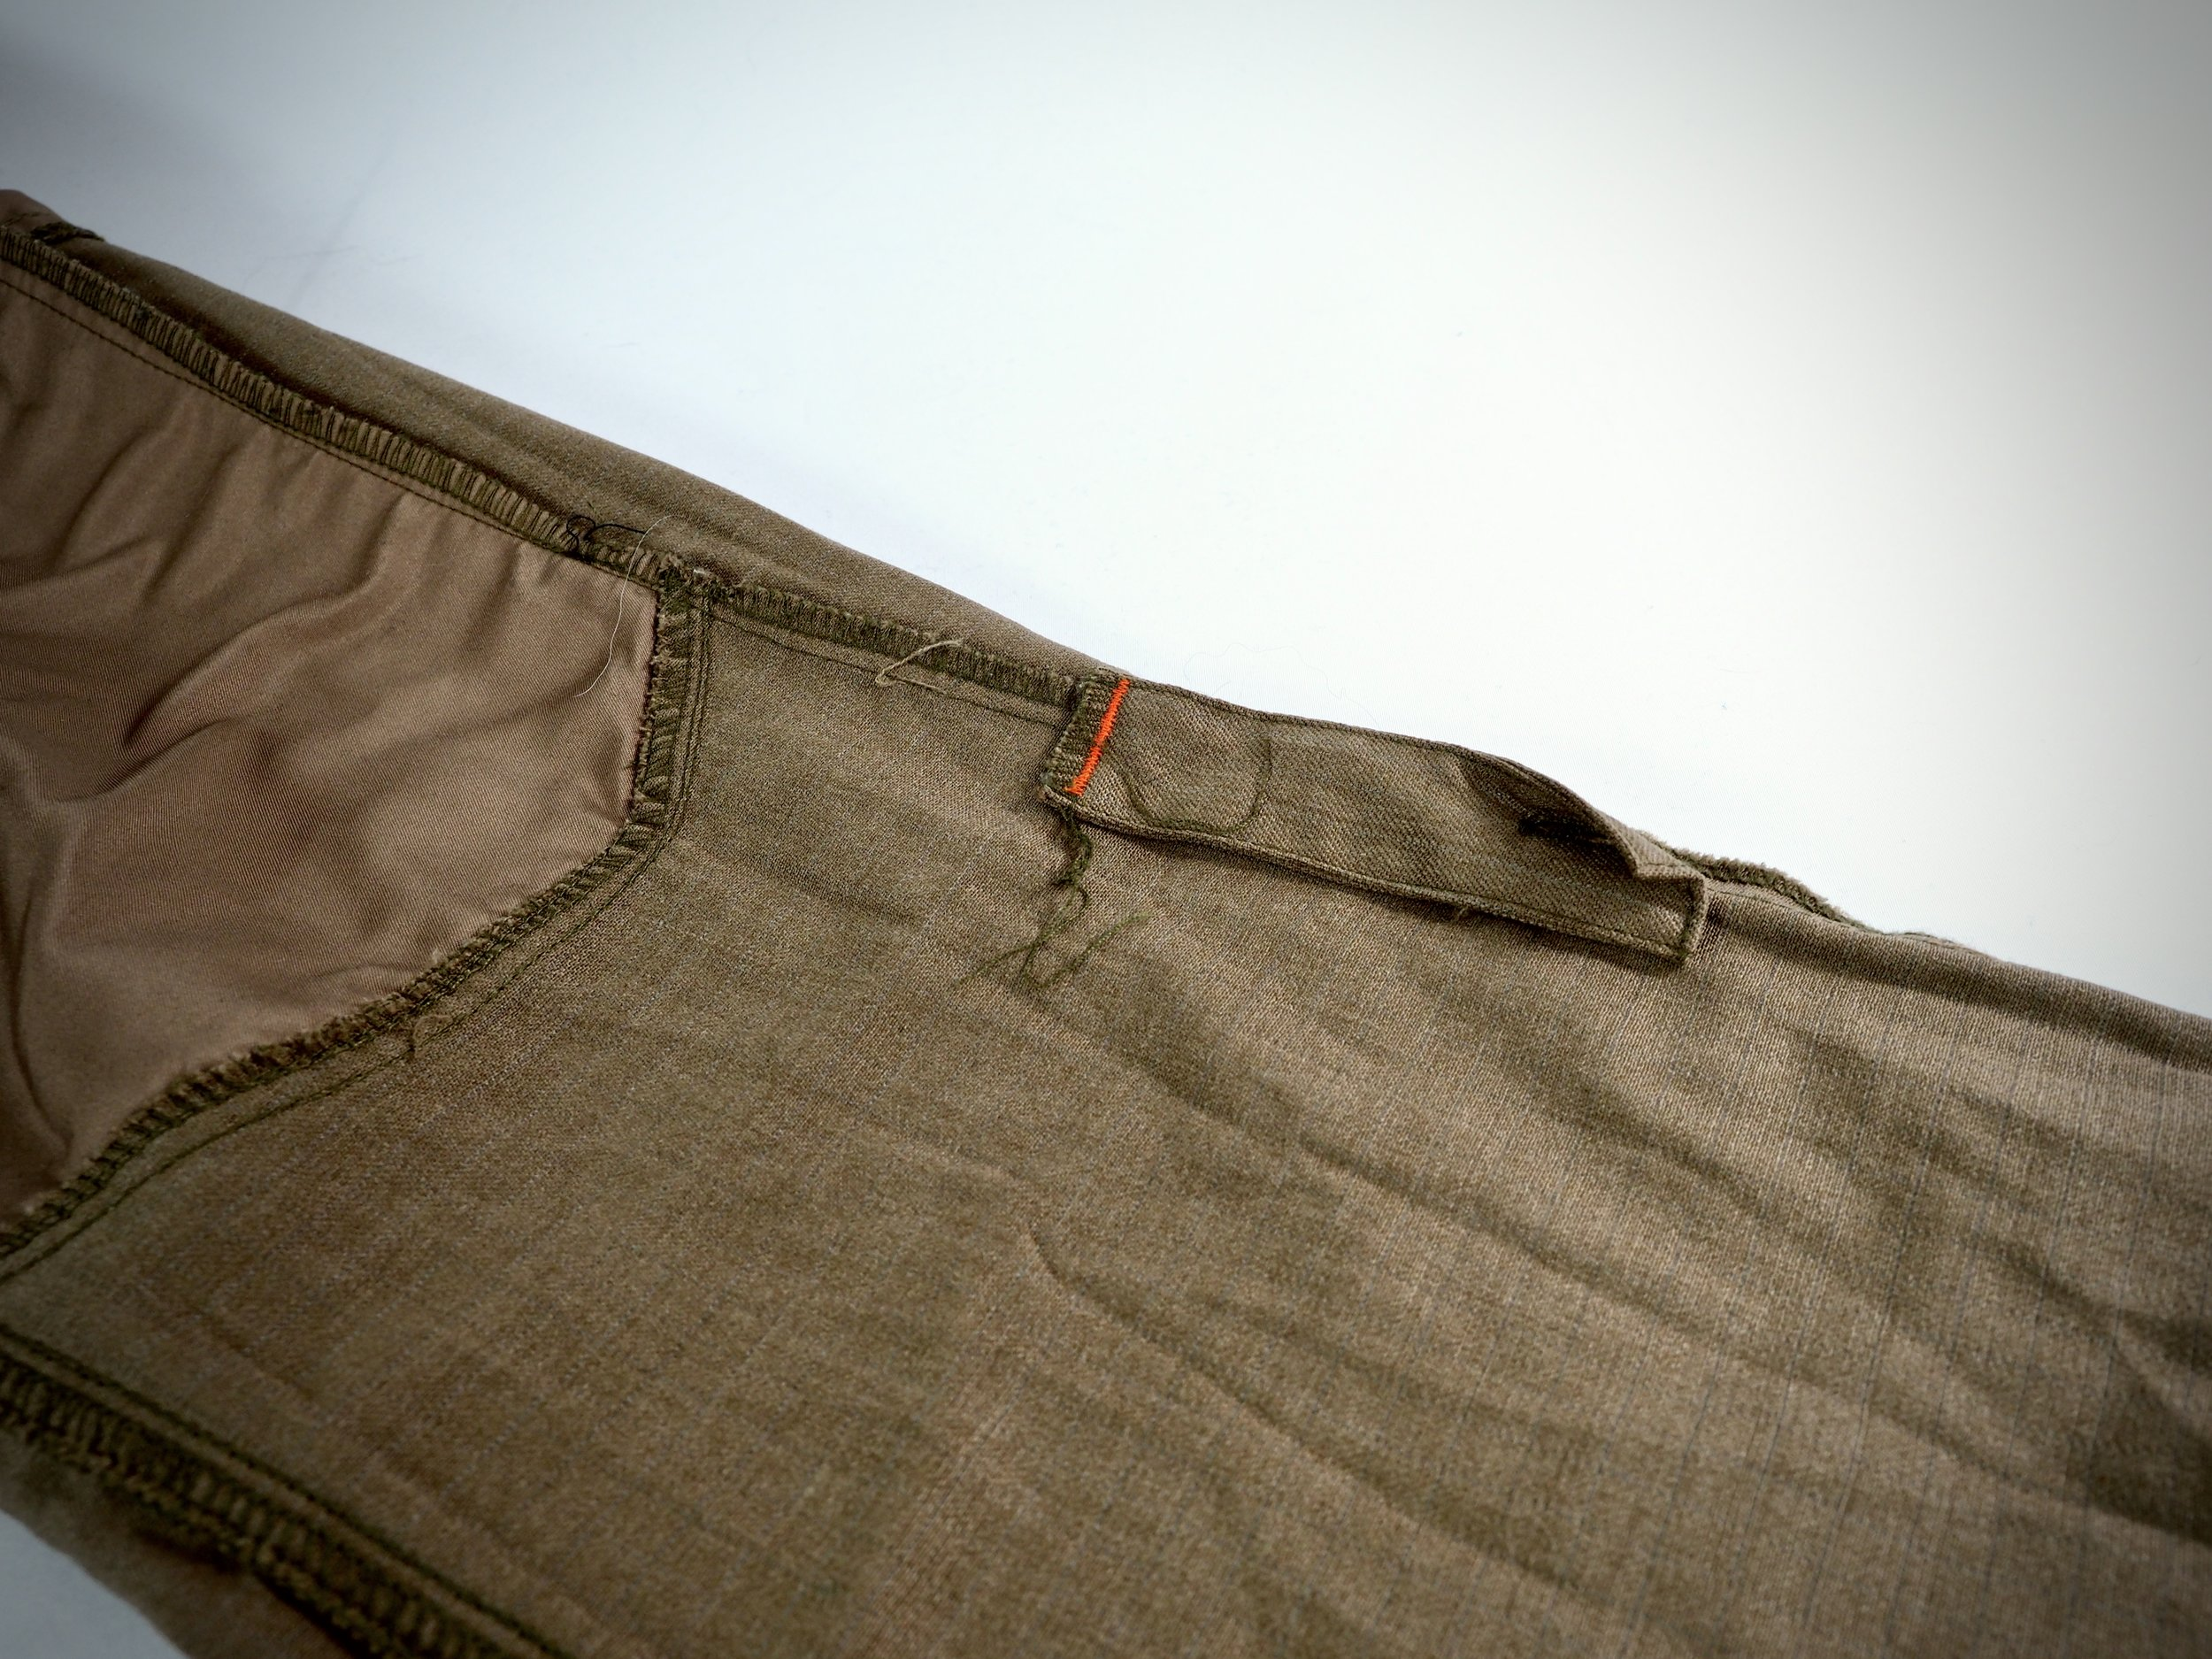 This little bit of fabric is for you to use when you roll up the pants. You can use a button on the outside of the pant to secure them.